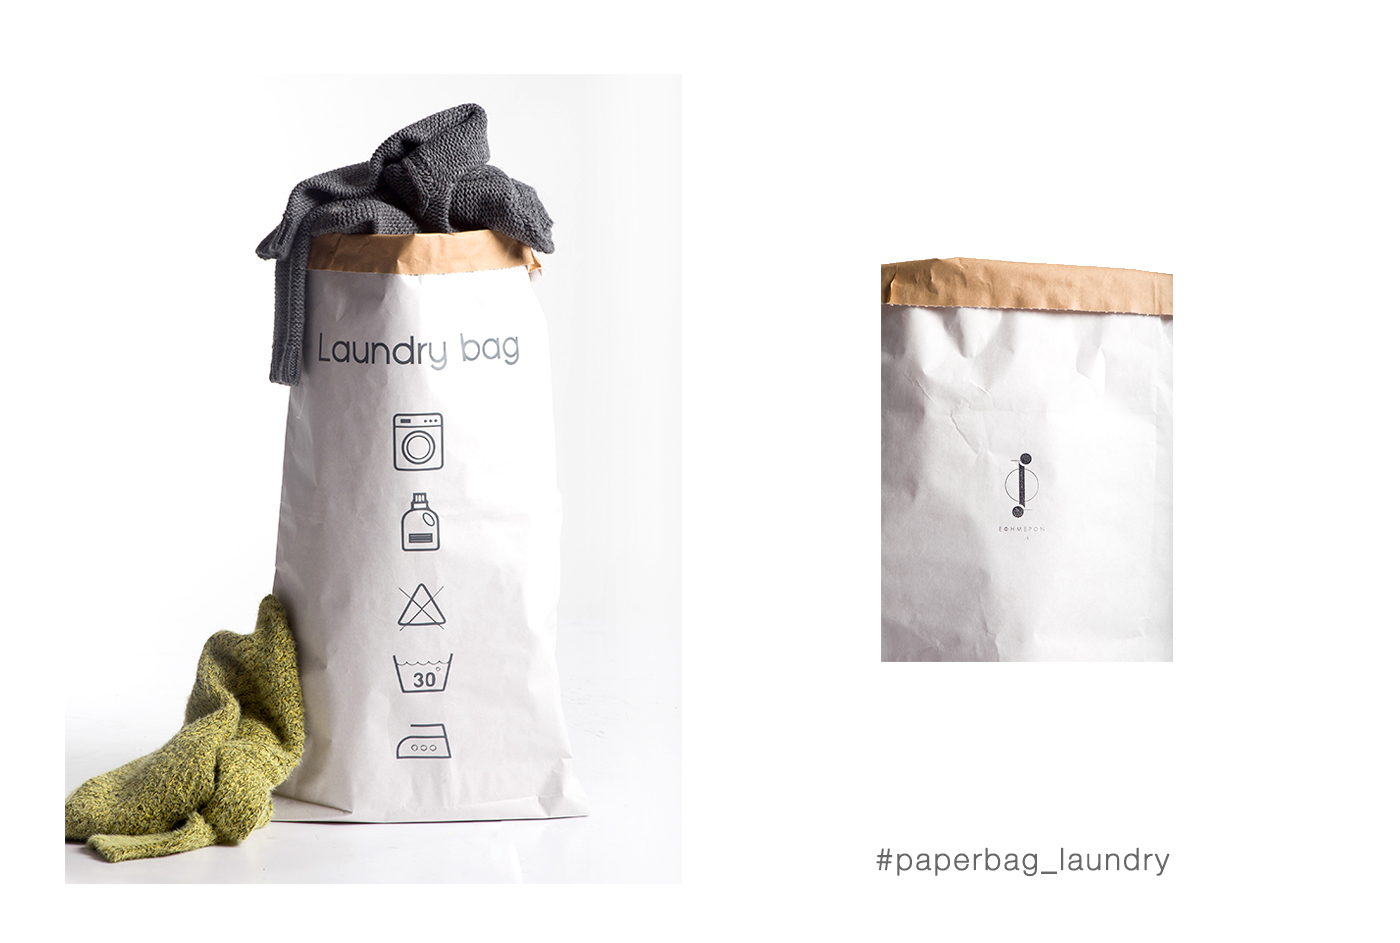 #paperbag_laundry